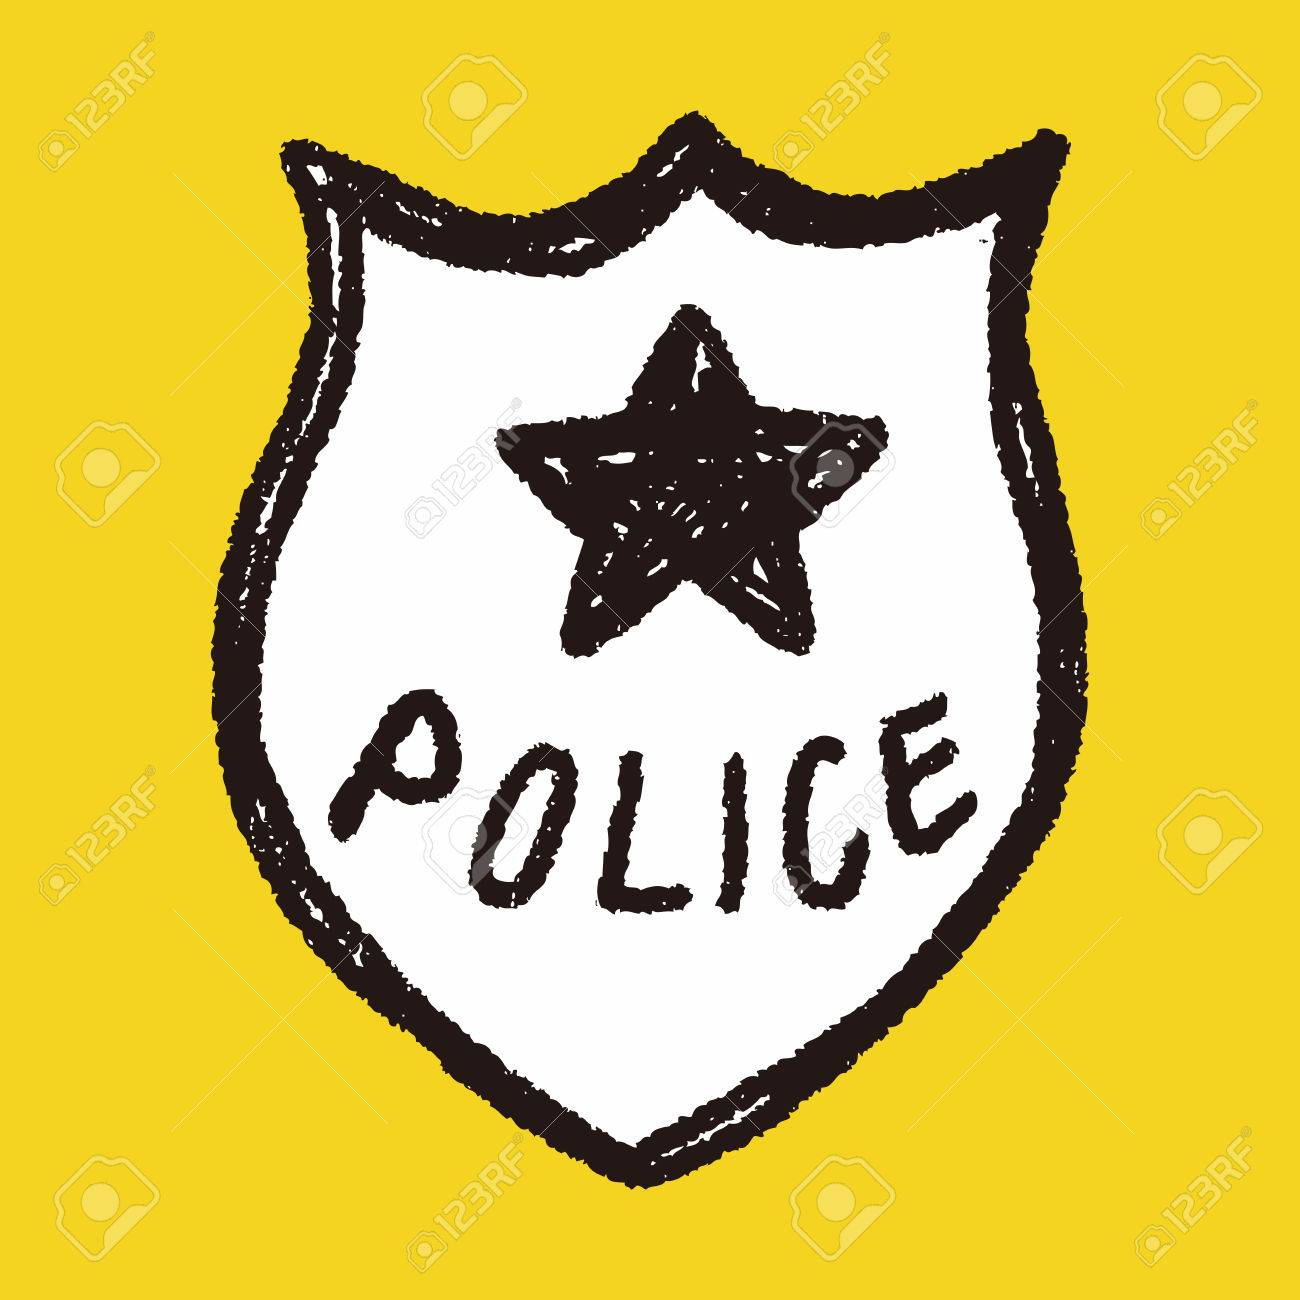 police badge doodle royalty free cliparts vectors and stock rh 123rf com police badge vector png police badge vector art